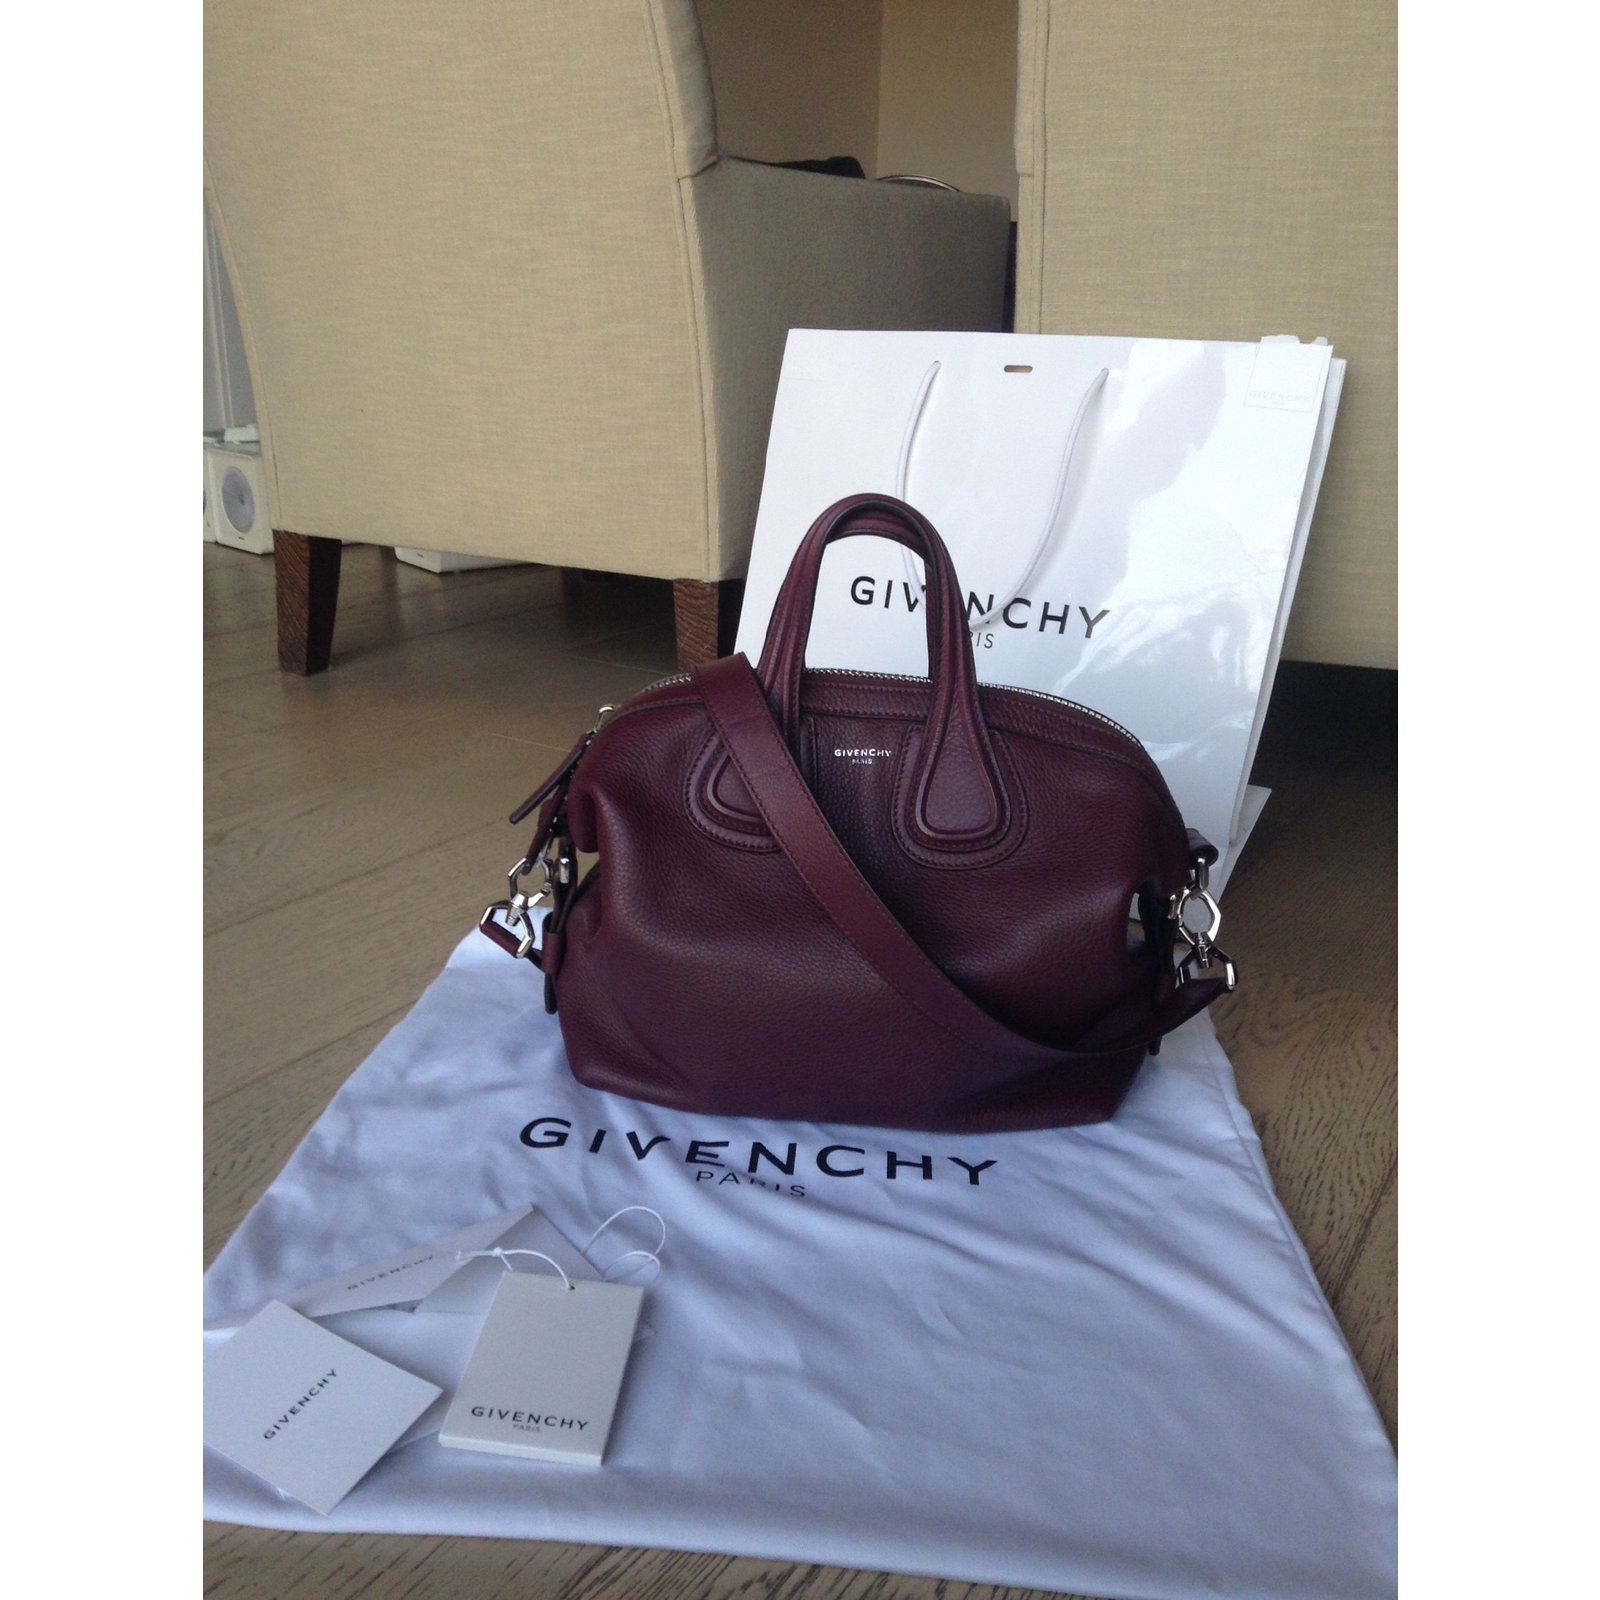 5a12ddb6b7 Facebook · Pin This. Givenchy Handbag Handbags Leather Dark red ref.27047